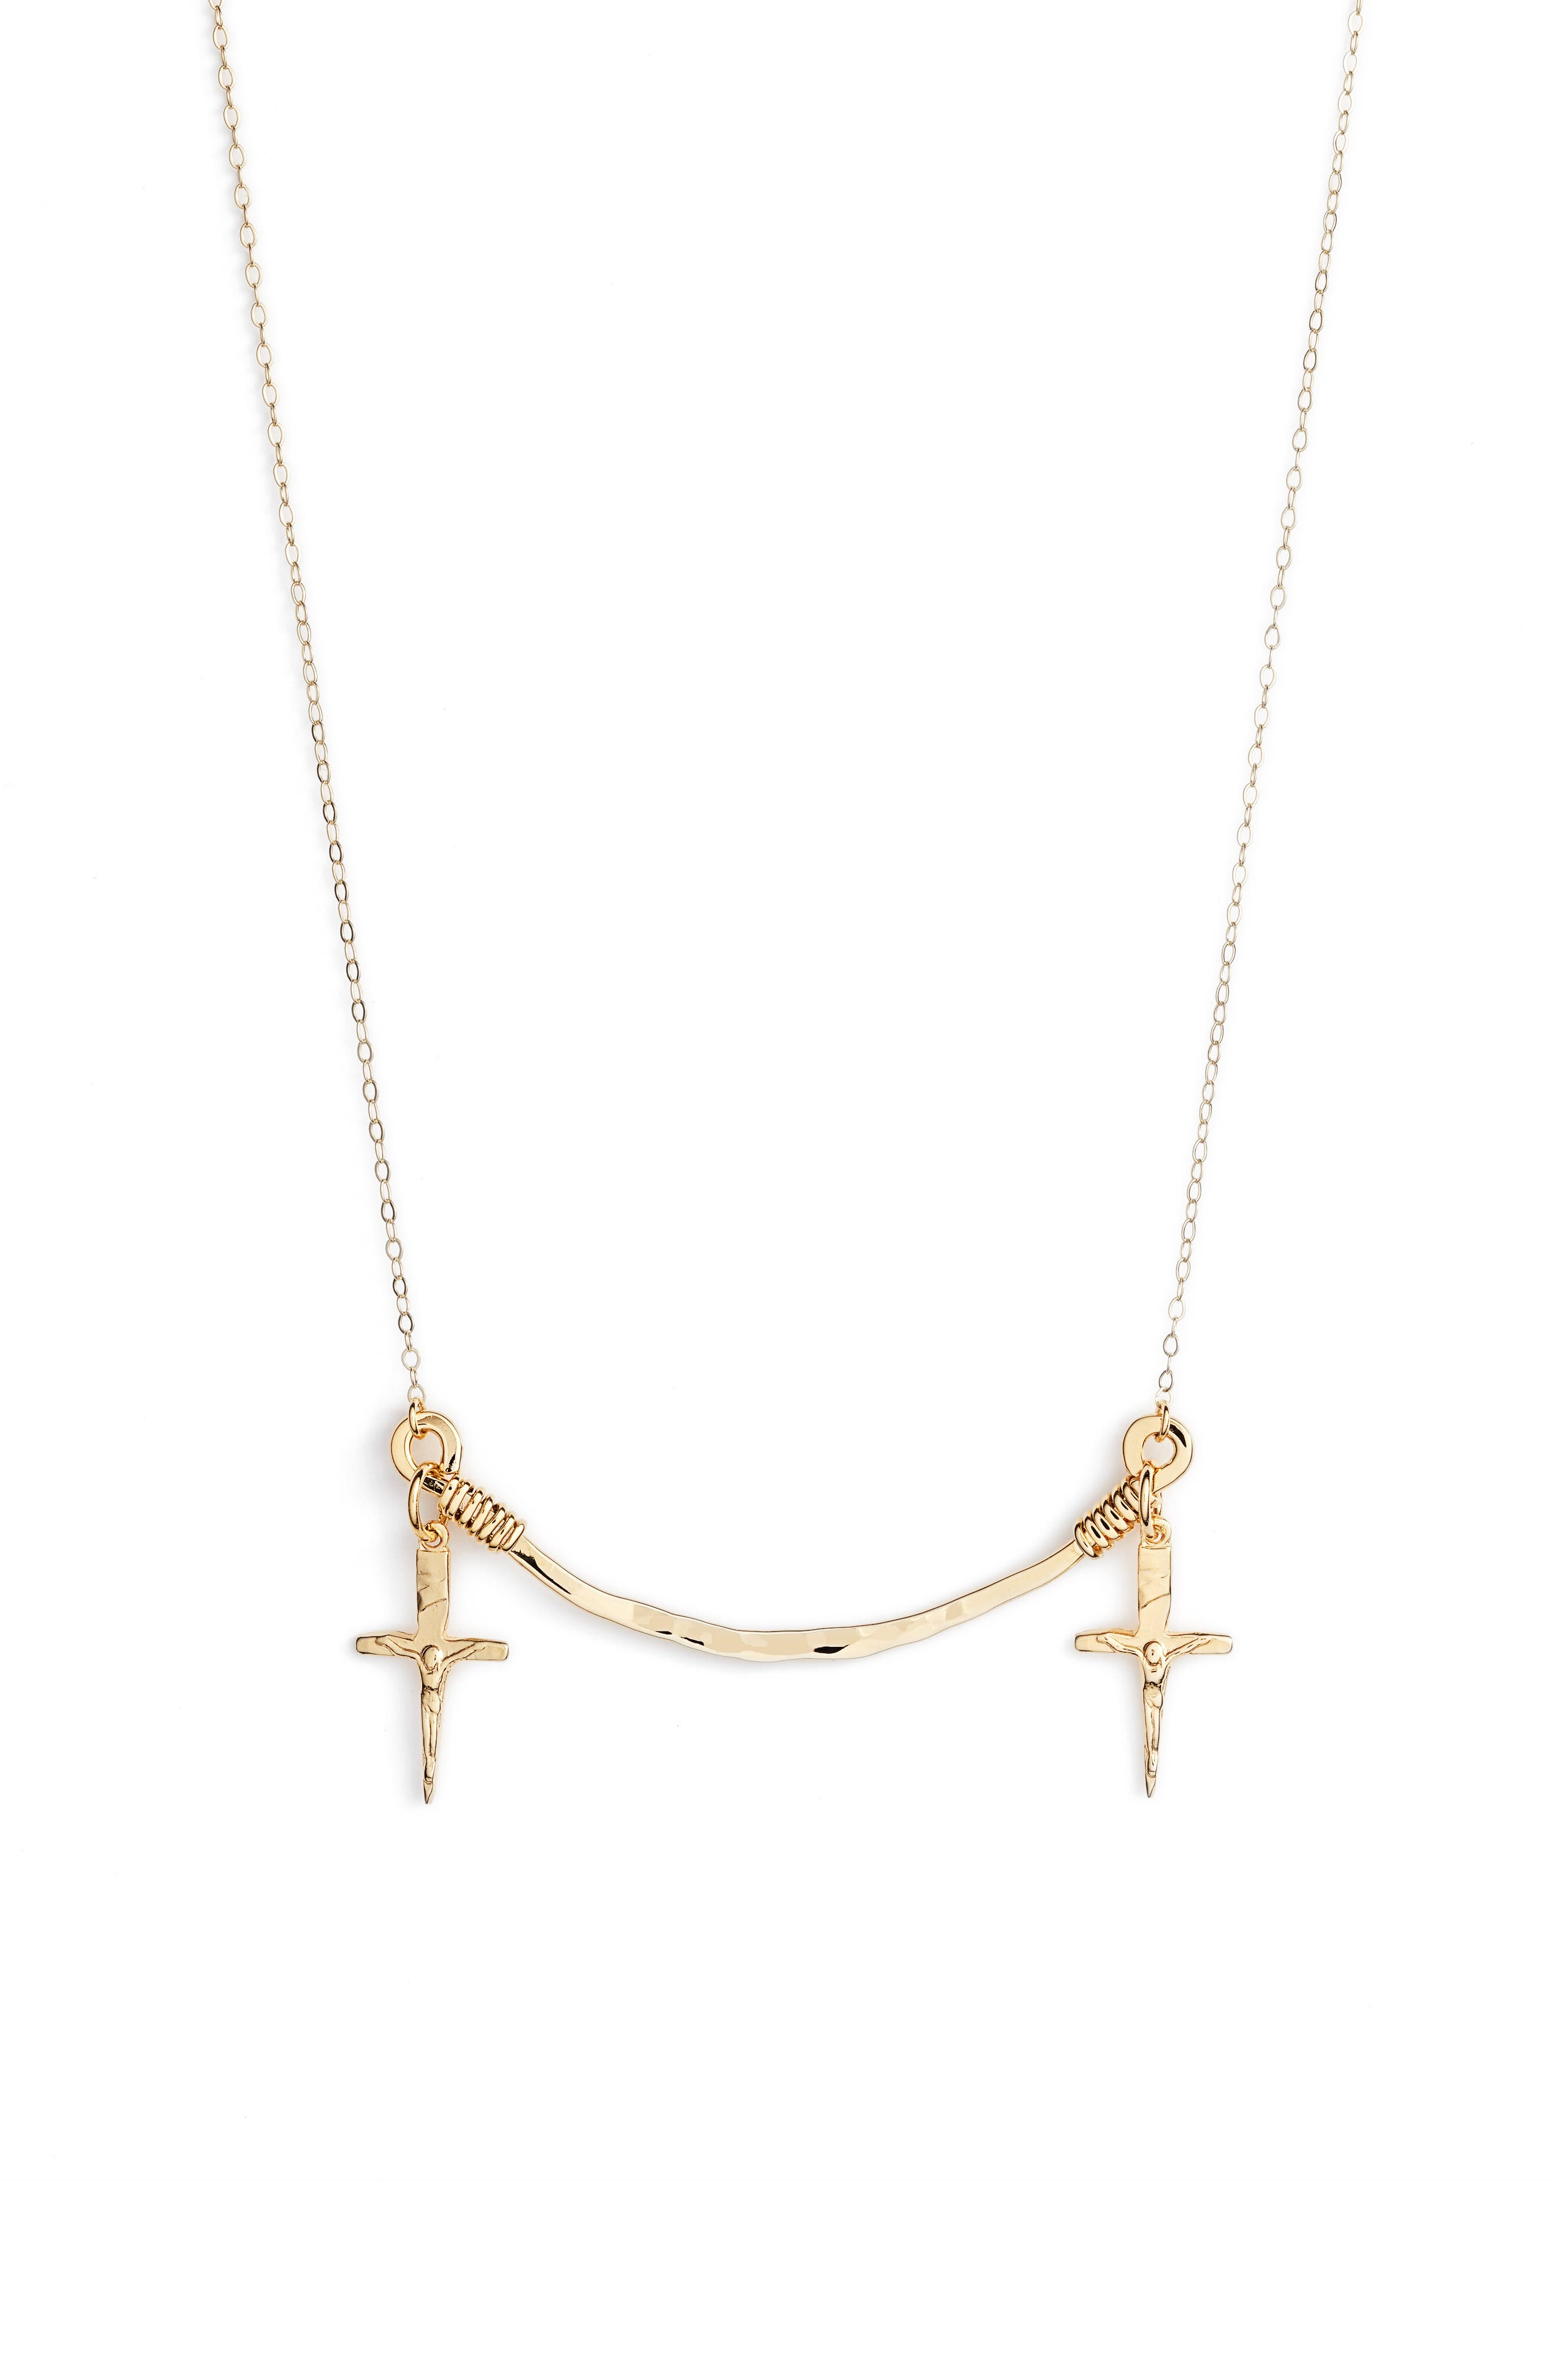 Main Image - Britt Bolton Frontal Necklace